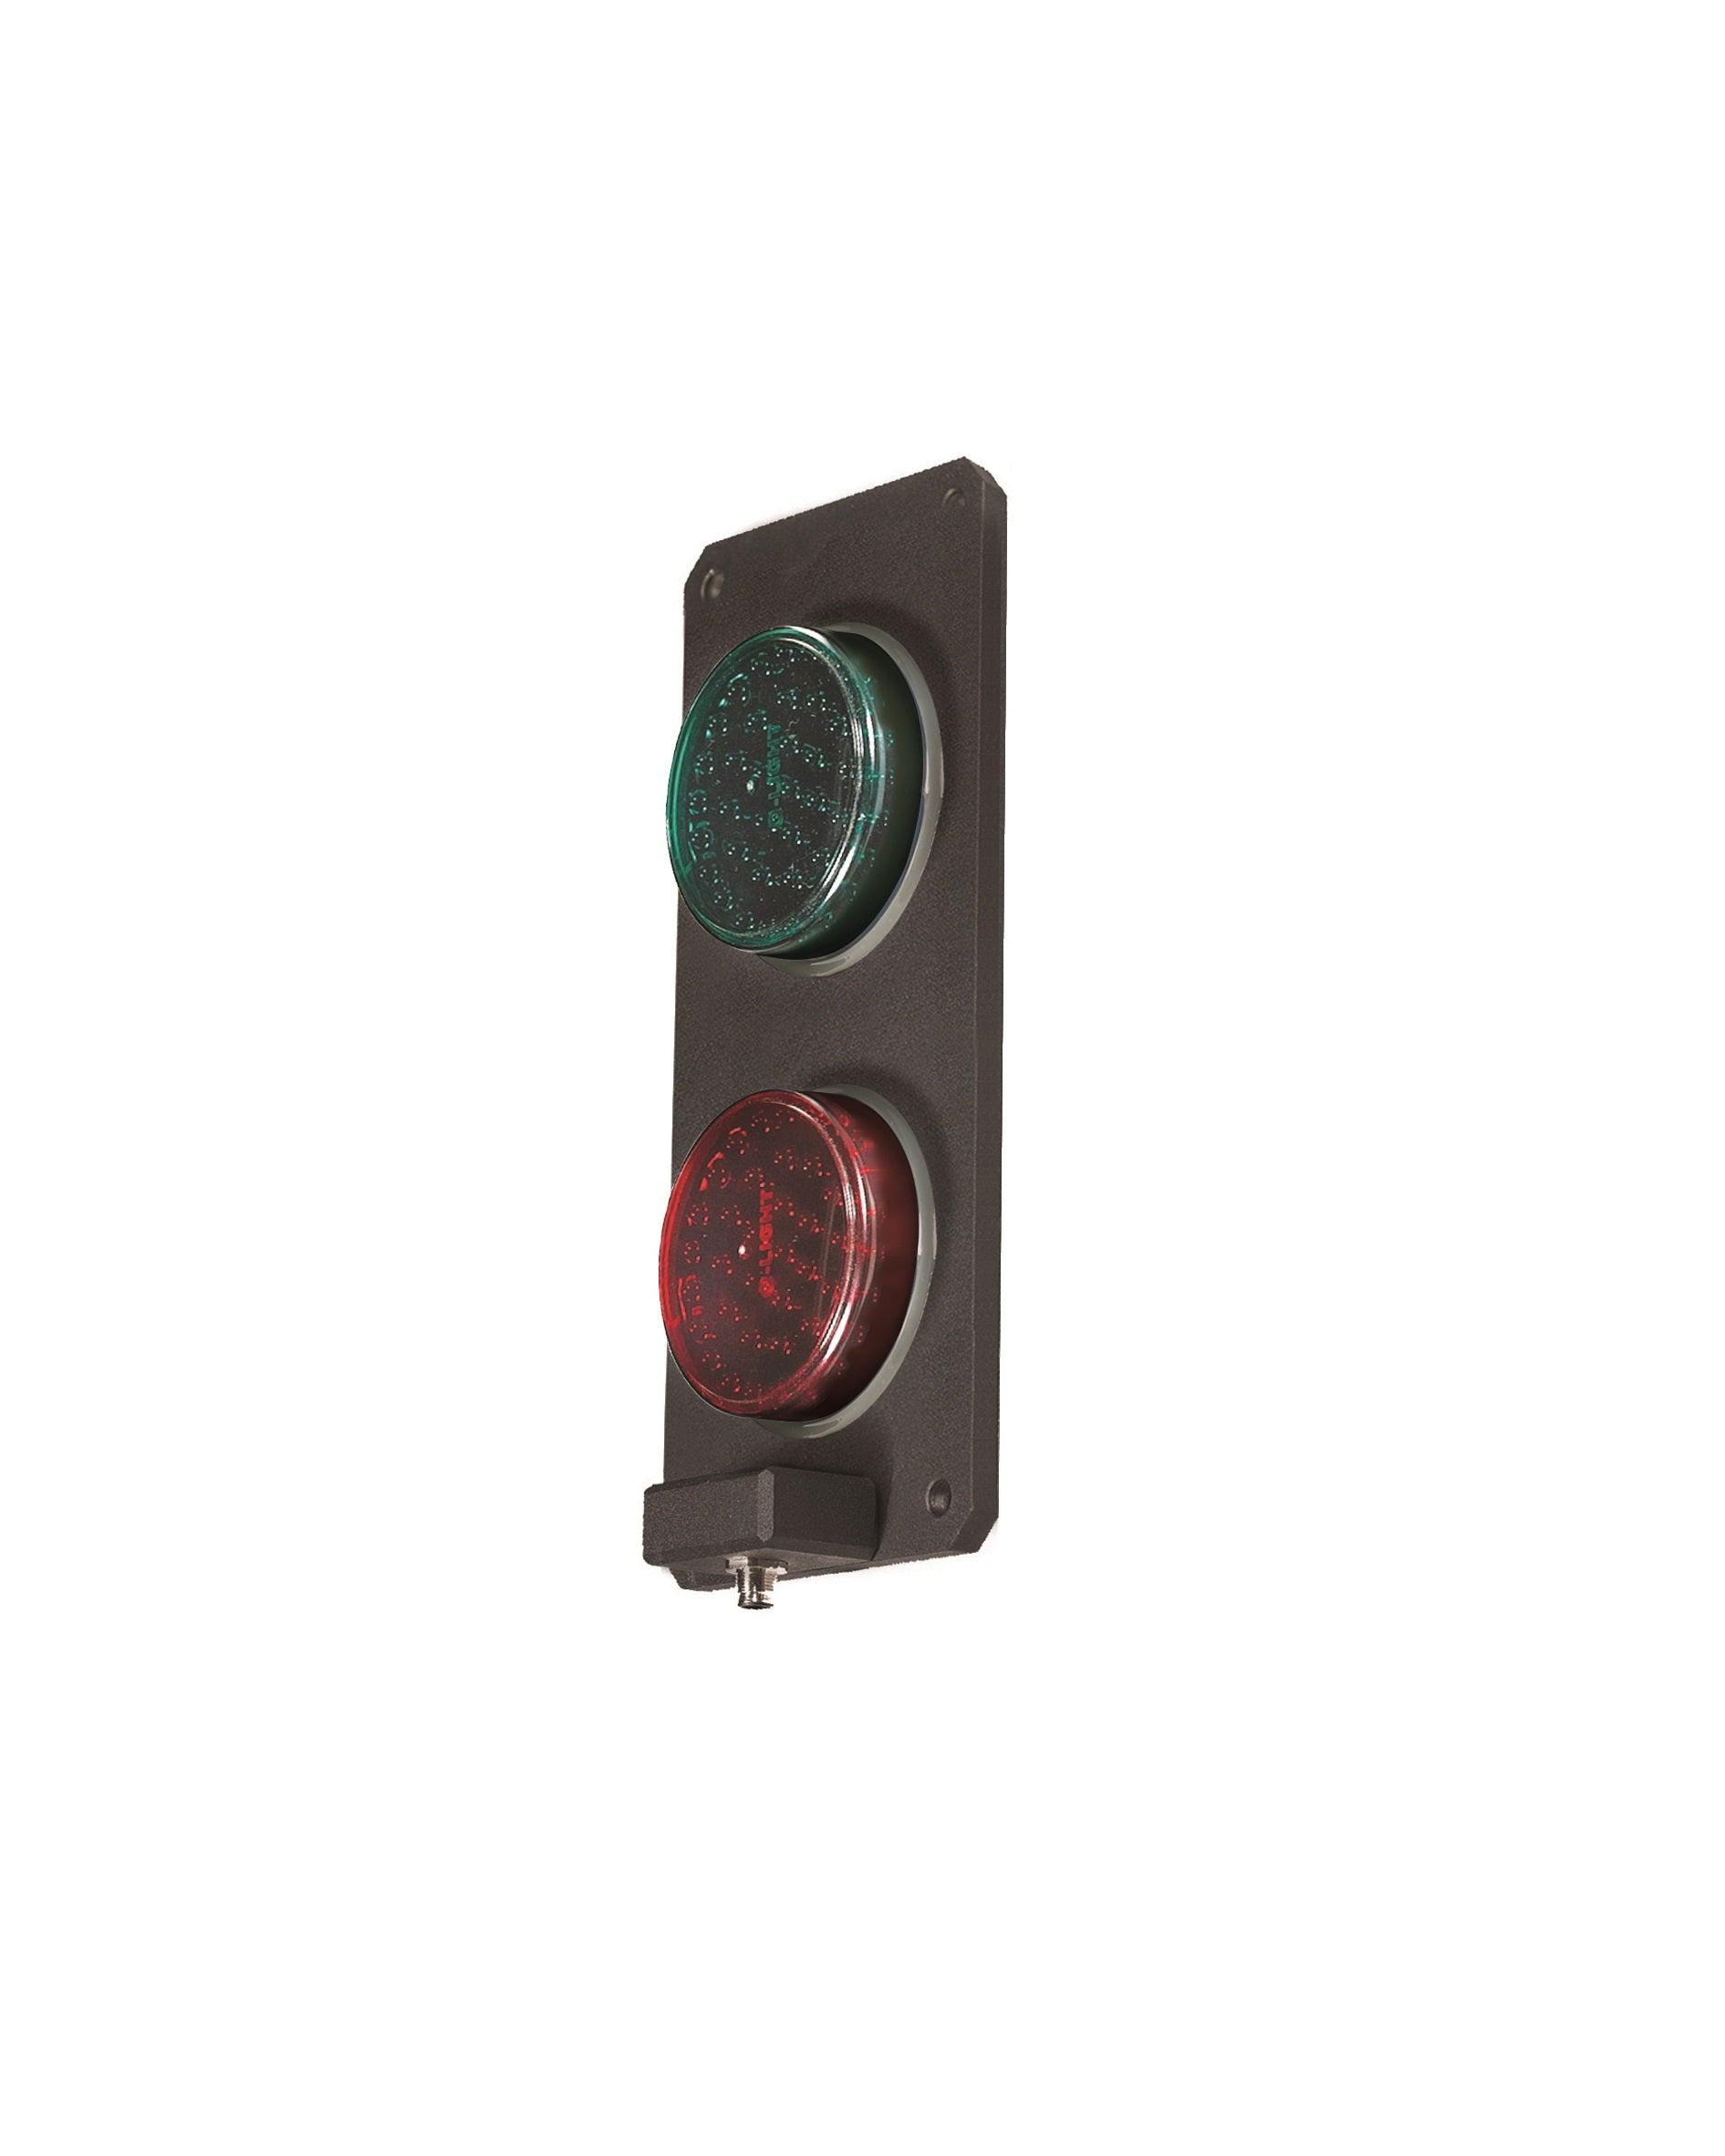 Qlight Qlight SSL200M 2 Aspect 92mm Surface Mount IP68 Metal Body LED Traffic Light - BNR Industrial